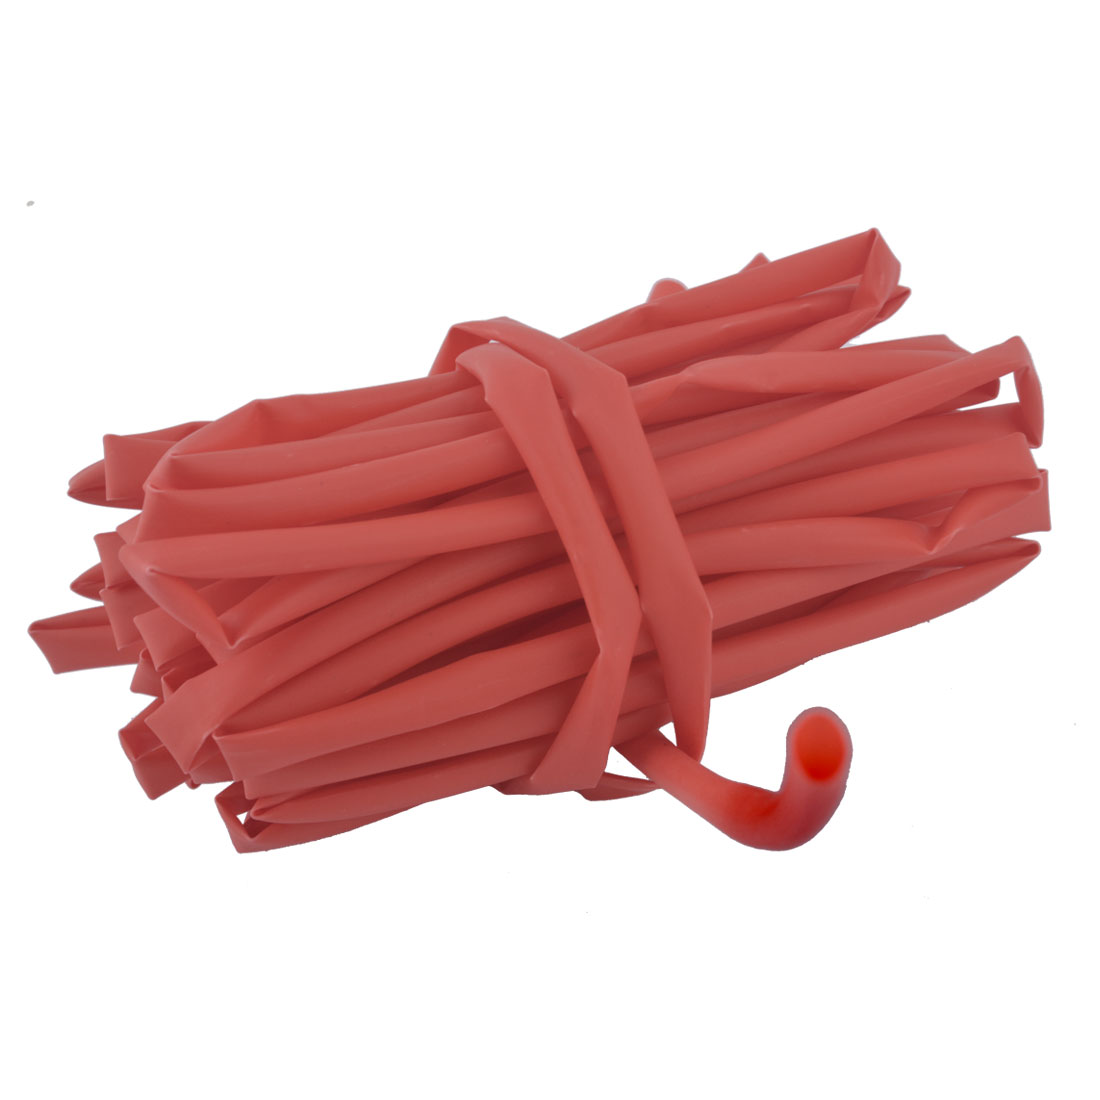 Polyolefin Sleeving Ratio 2:1 Shrink Heat Shrinkable Tube Red 5M